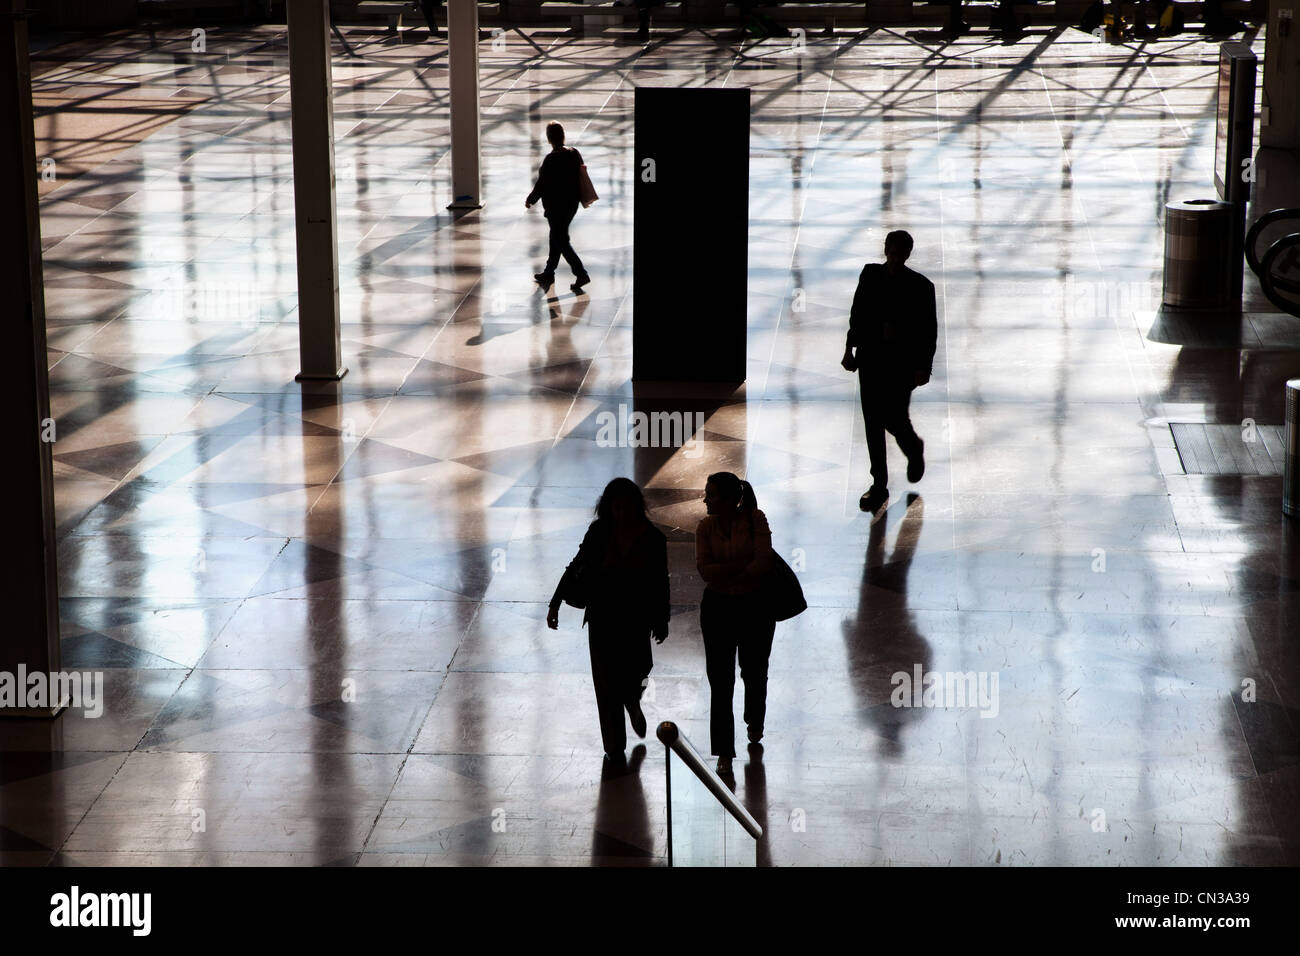 People in lobby of conference center - Stock Image